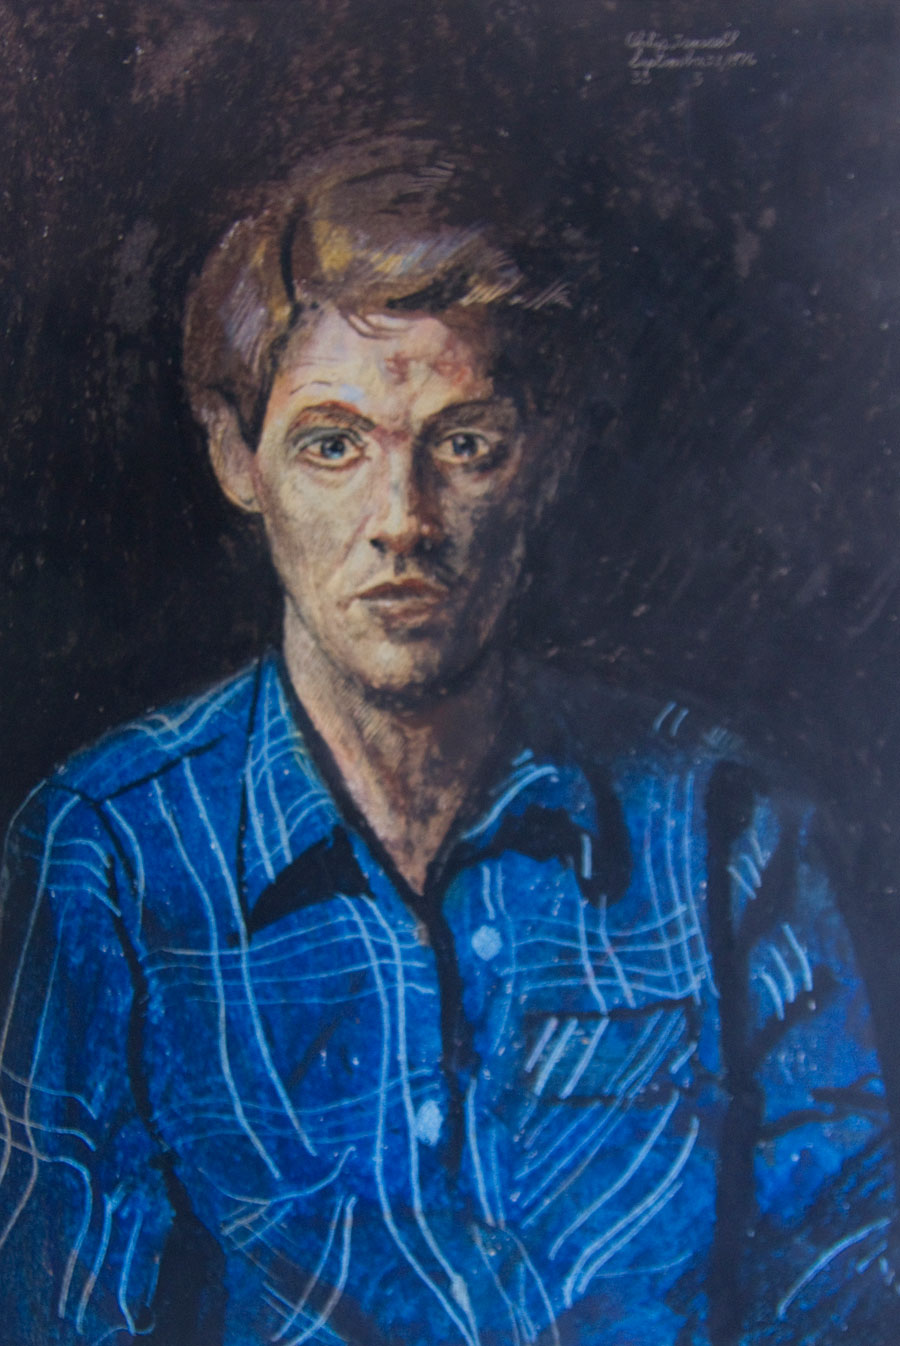 Self Portrait, September 23, 1976